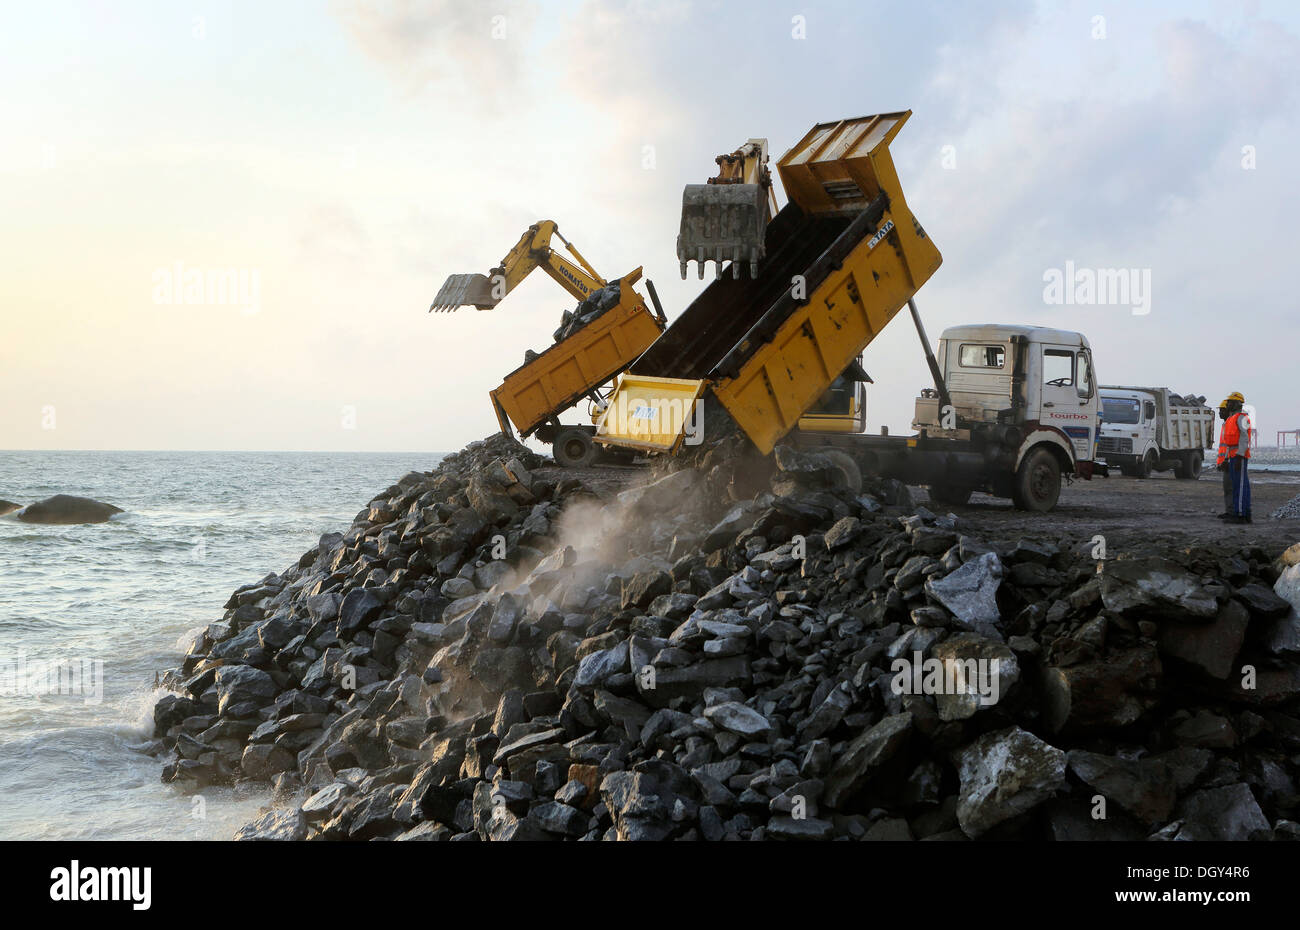 Dump truck offloading large rocks onto a sea wall barrier in Colombo, Sri Lanka - Stock Image